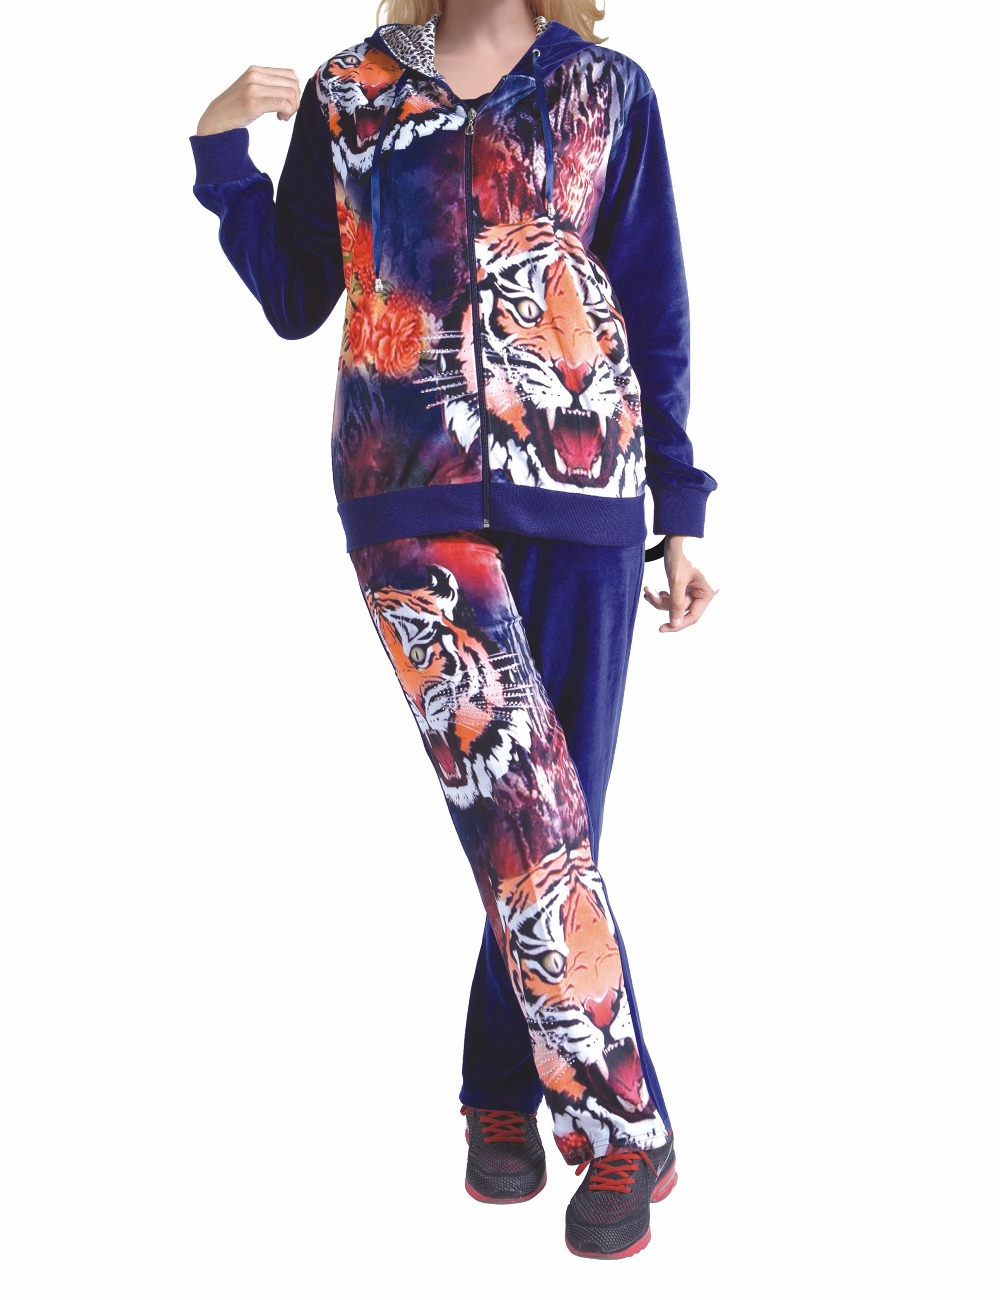 US $32.99 |Fashion Women Clothing Velour Velvet CVC Pajamas set plus size  Lounge wear 3pcs HN 0125-in Women\'s Sets from Women\'s Clothing on ...